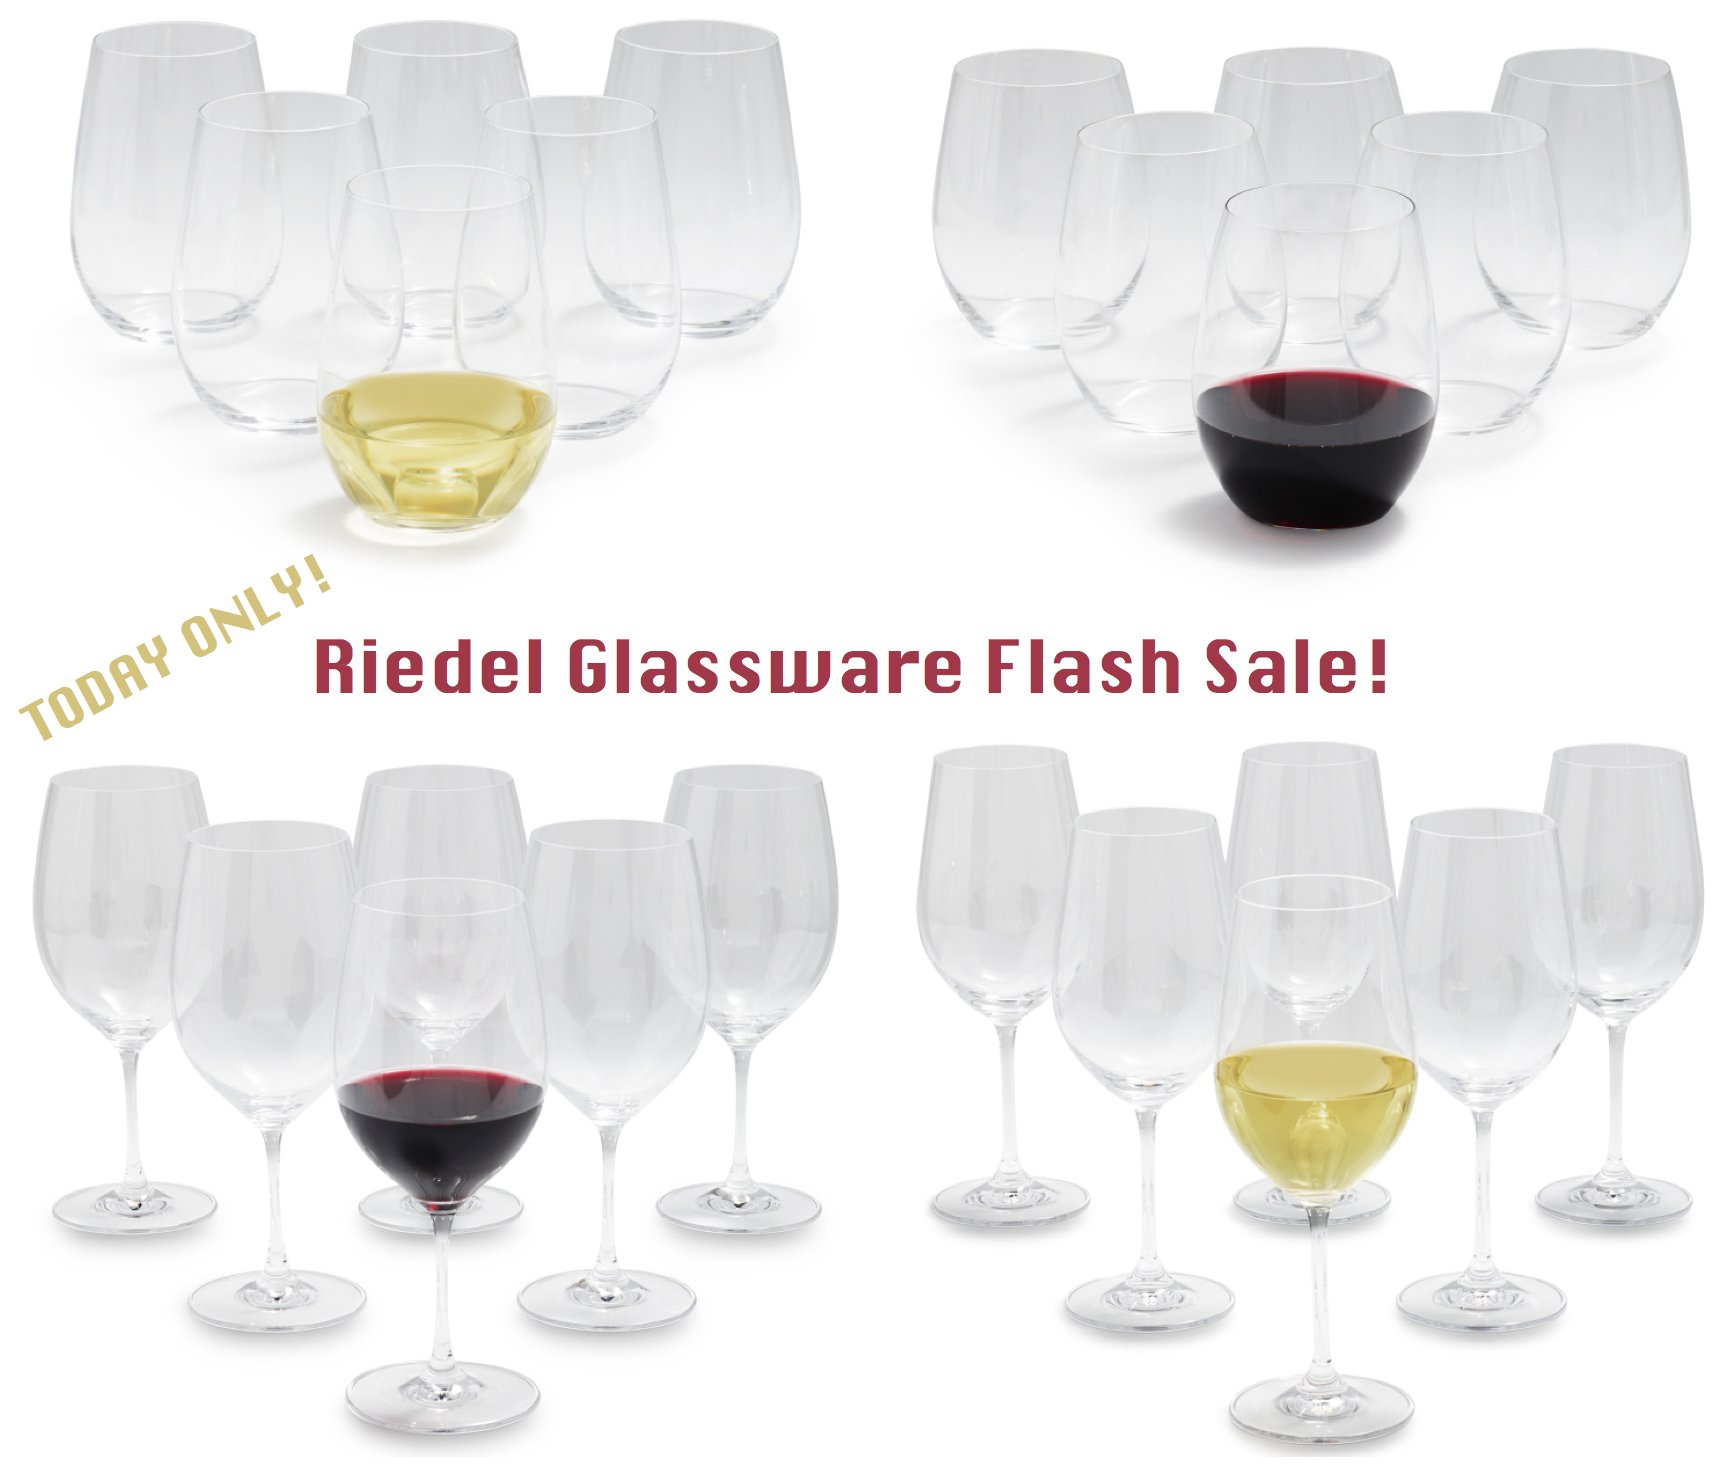 Riedel Glassware Flash Sale